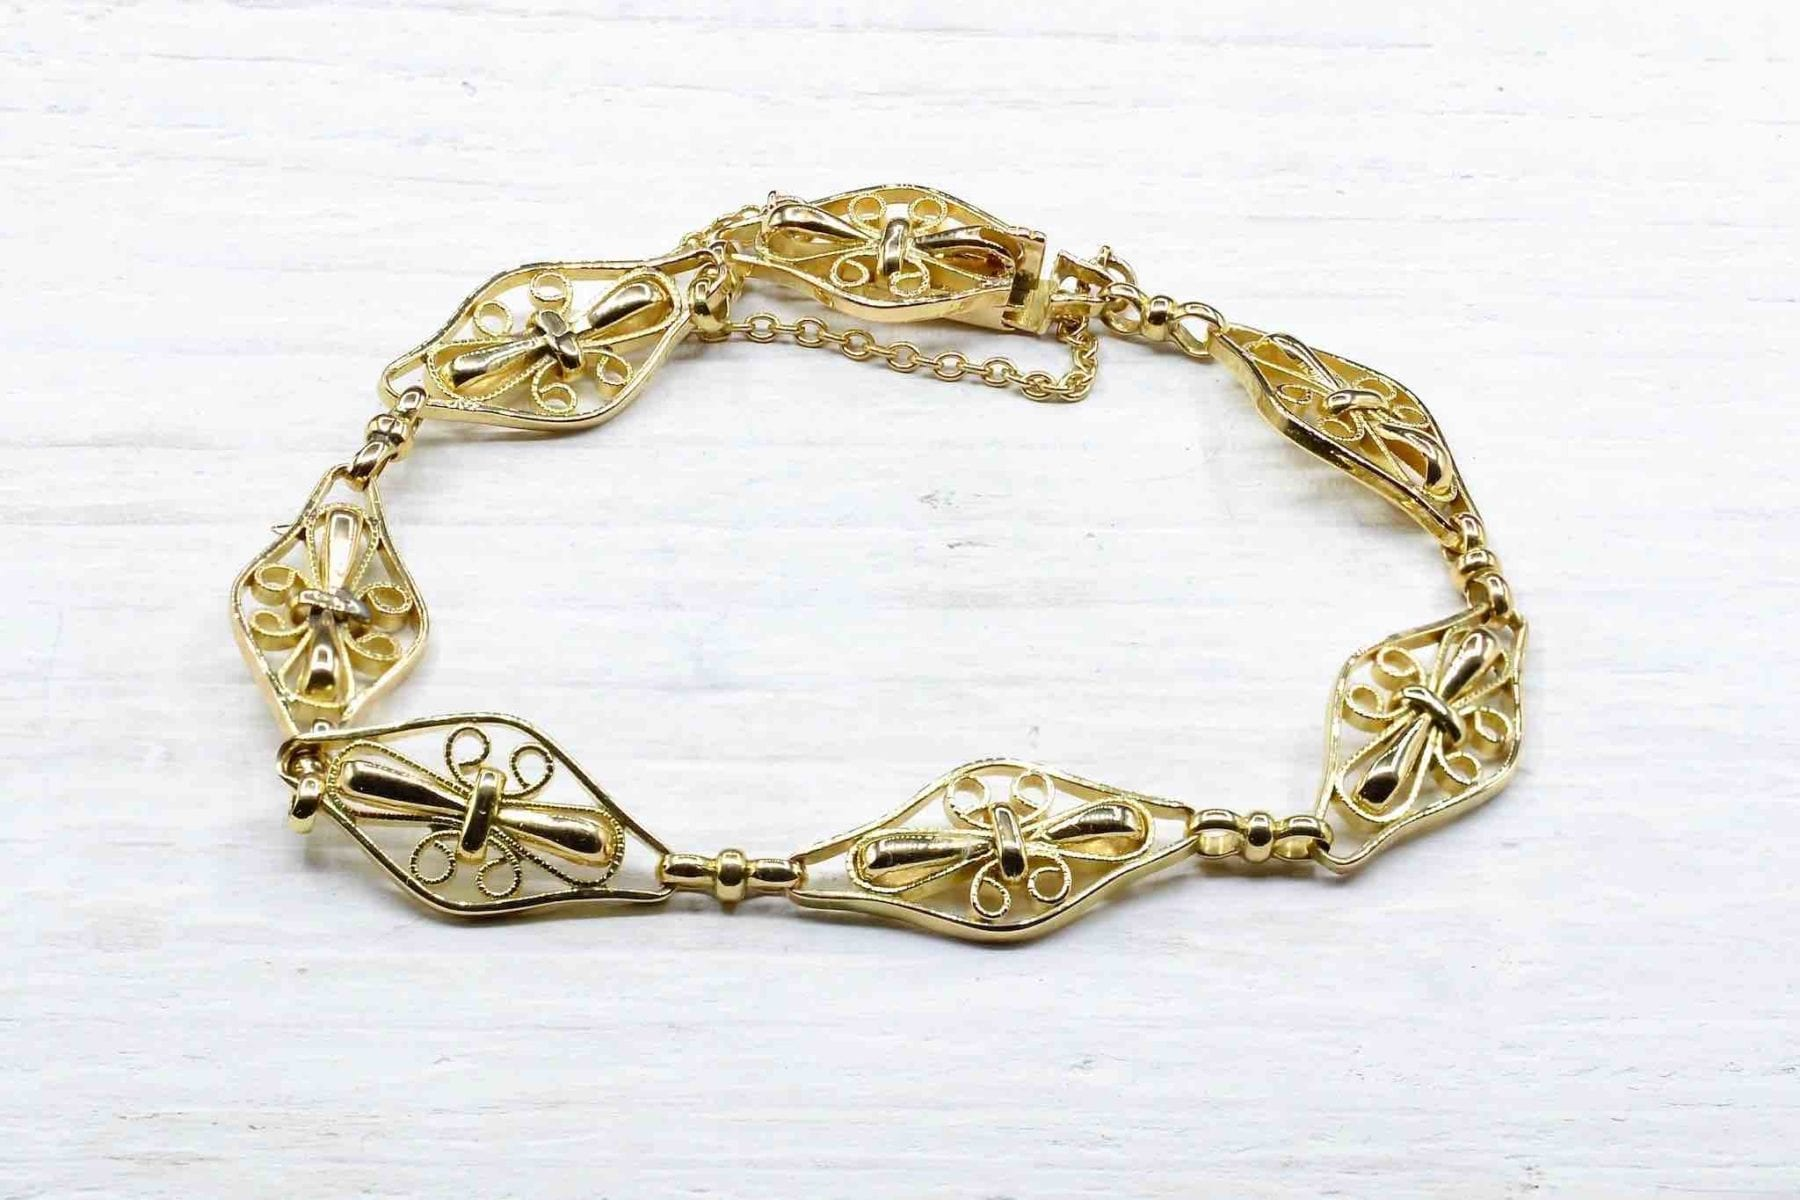 Bracelet ancien en or